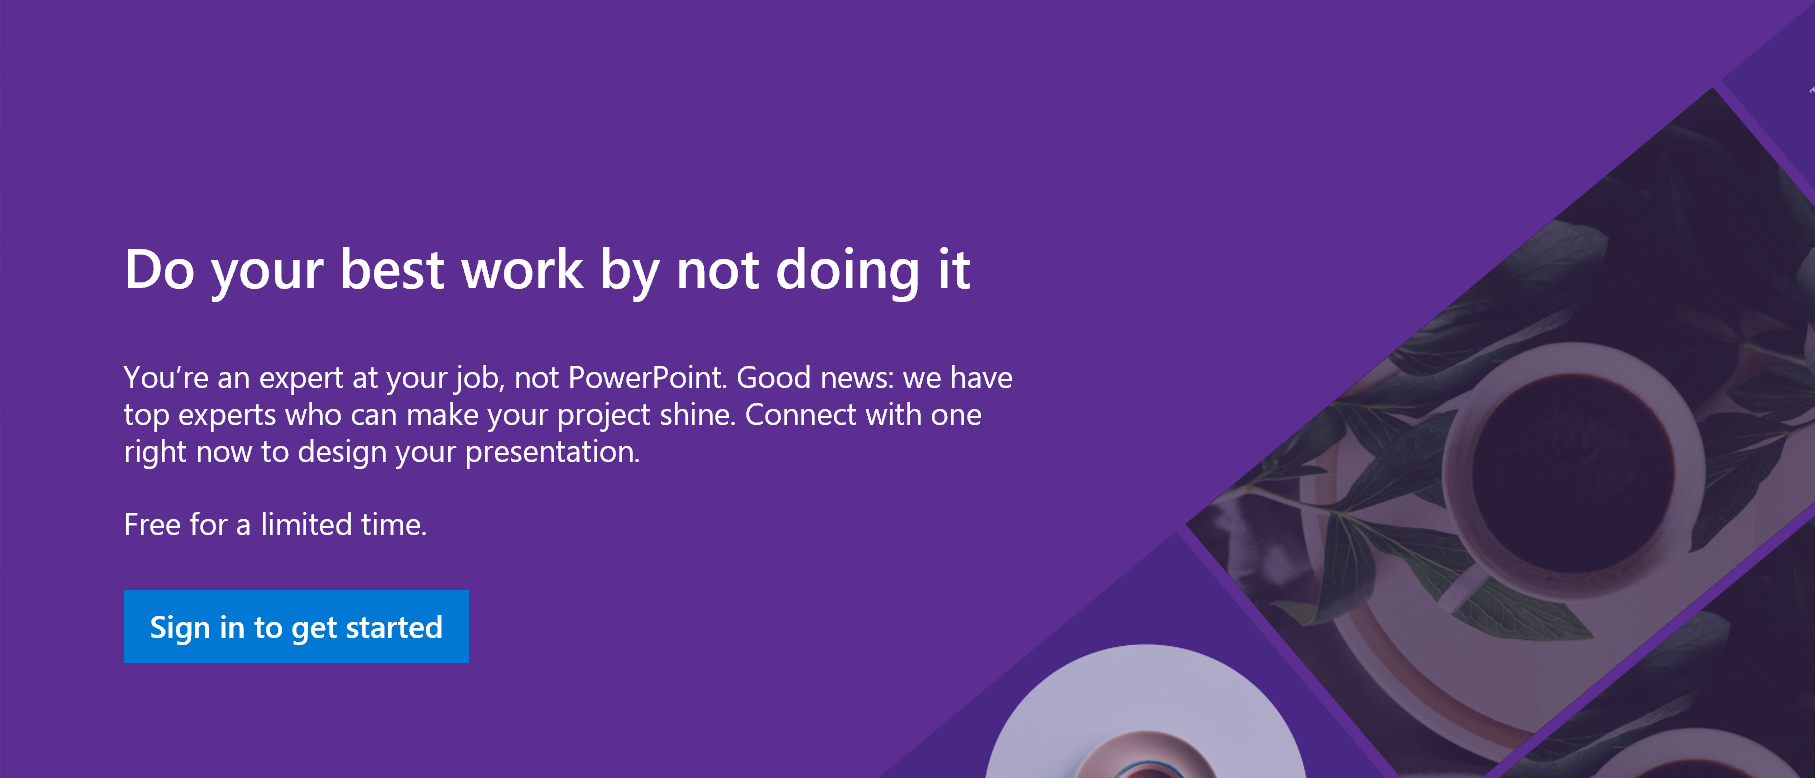 Do your best work by not doing it. You're an expert at your job, not PowerPoint. Good news: we have top experts who can make your project shine. Connect with one right now to design your presentation. Free for a limited time. Sign in to get started.